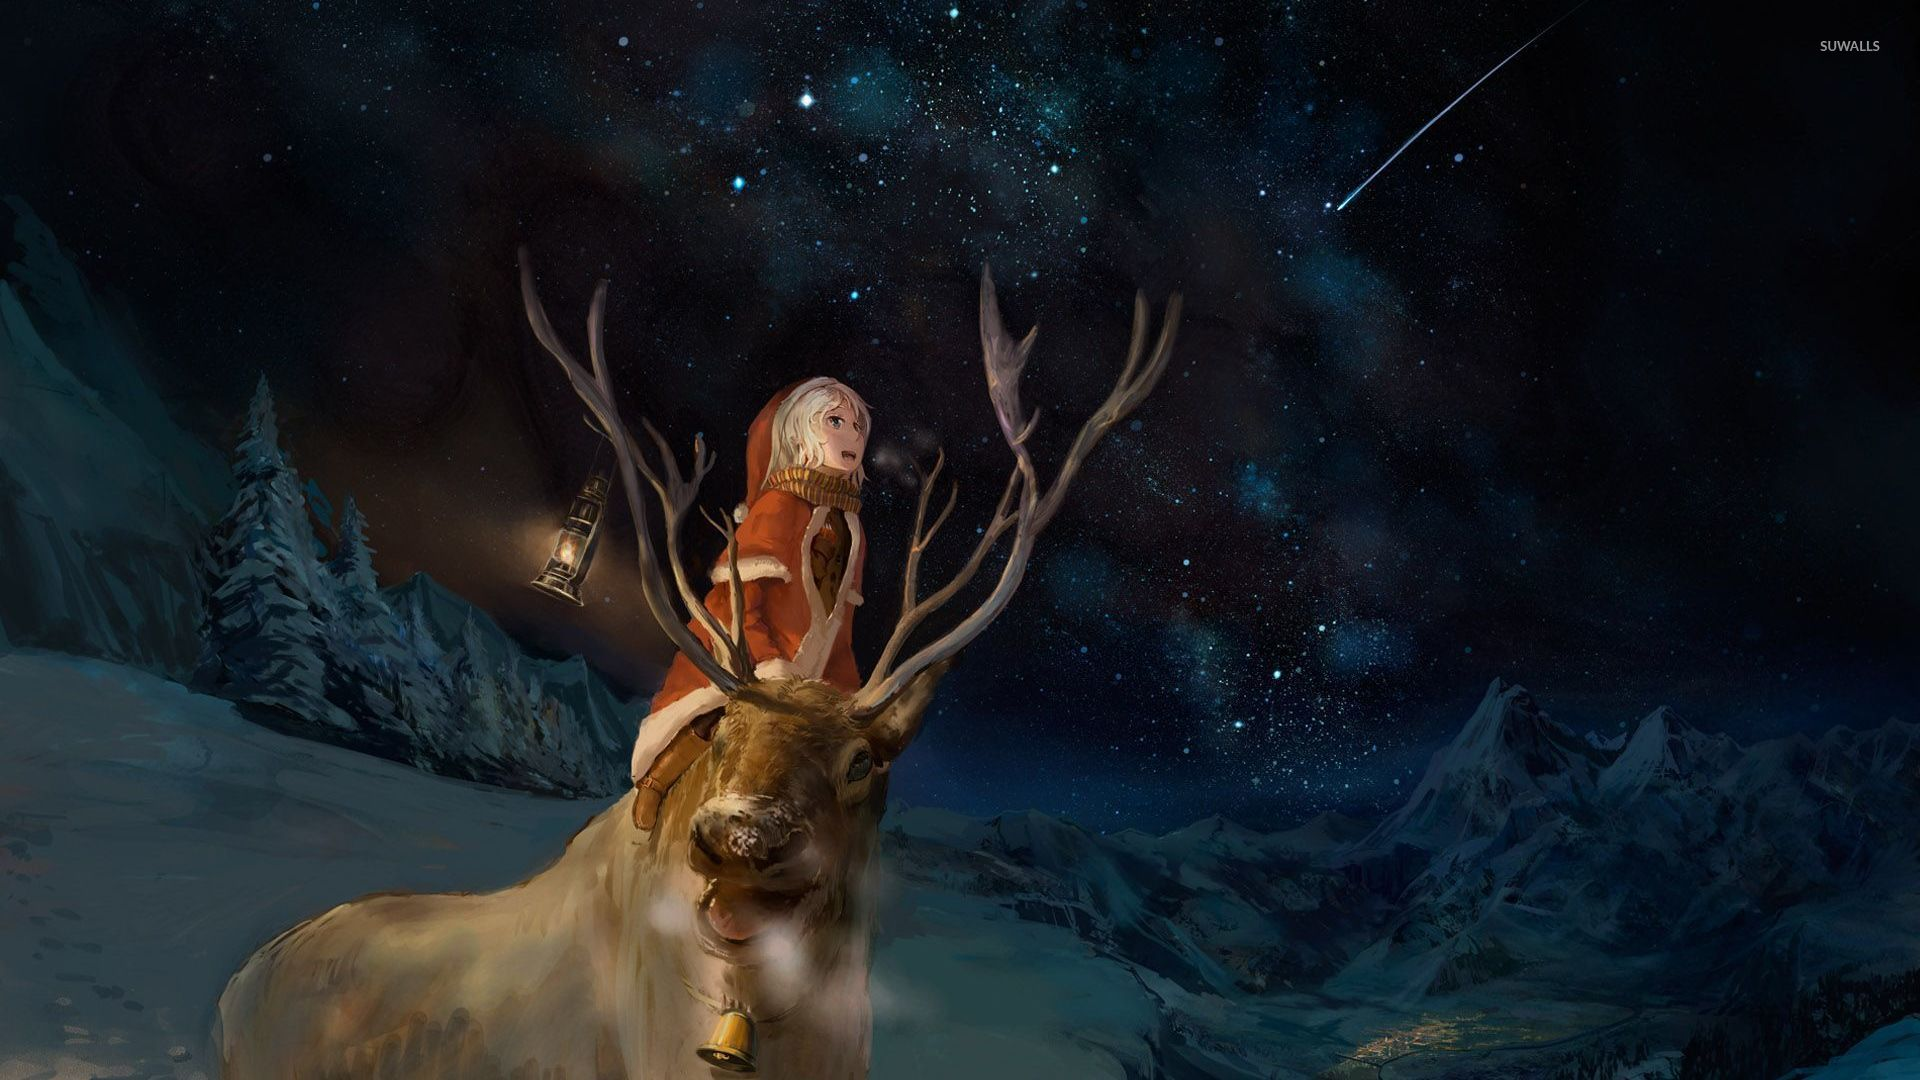 Santa Girl And A Reindeer Watching The Night Sky Wallpaper HD Wallpapers Download Free Images Wallpaper [1000image.com]